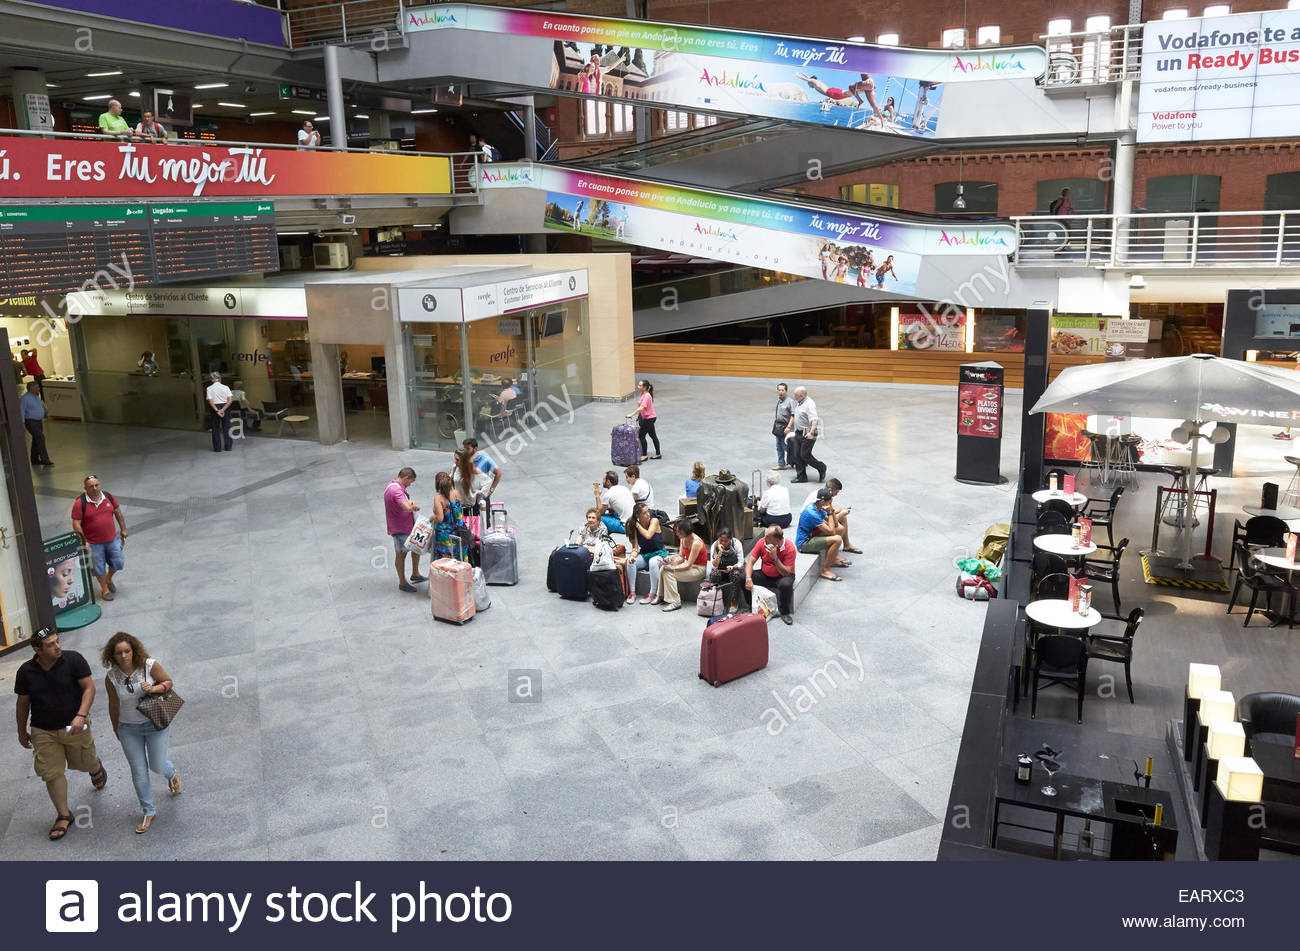 Interior of Atocha Railway Station in Madrid with commuters and restaurant area with diners seen from above - Stock Image